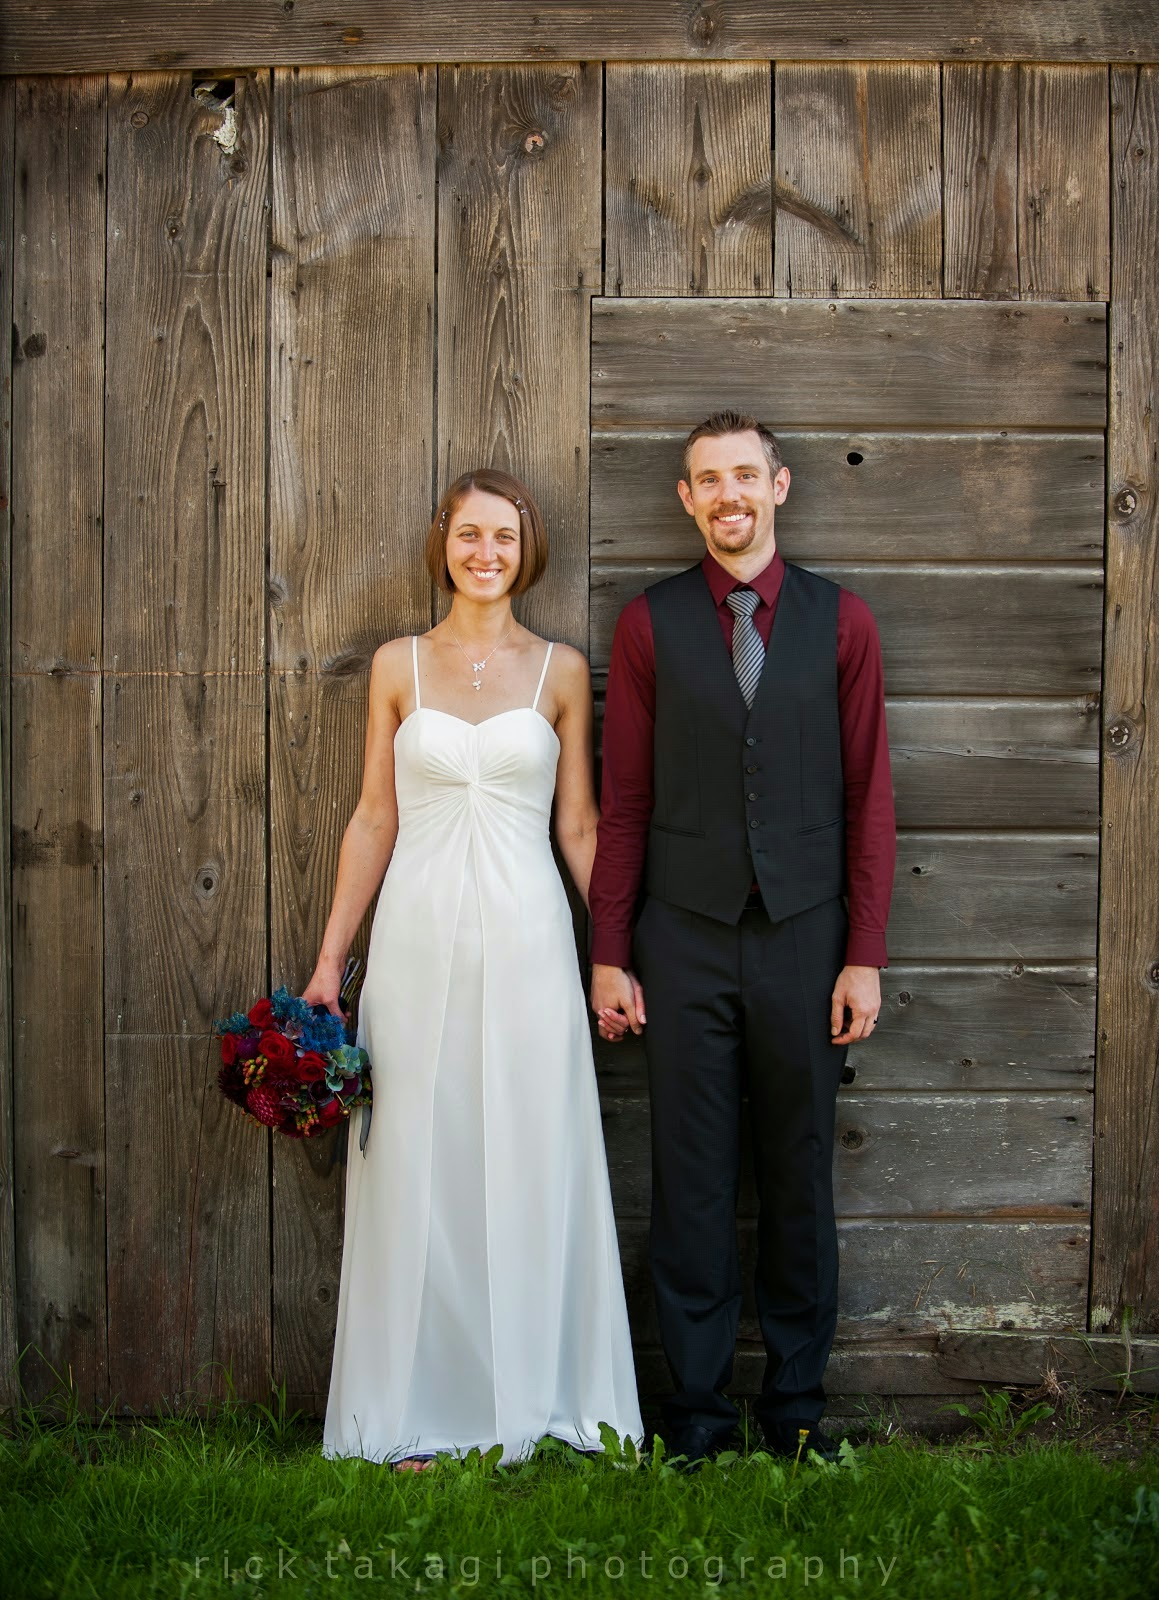 Ashley and Aaron in the wedding outfits - Patricia Stimac, Seattle Wedding Officiant